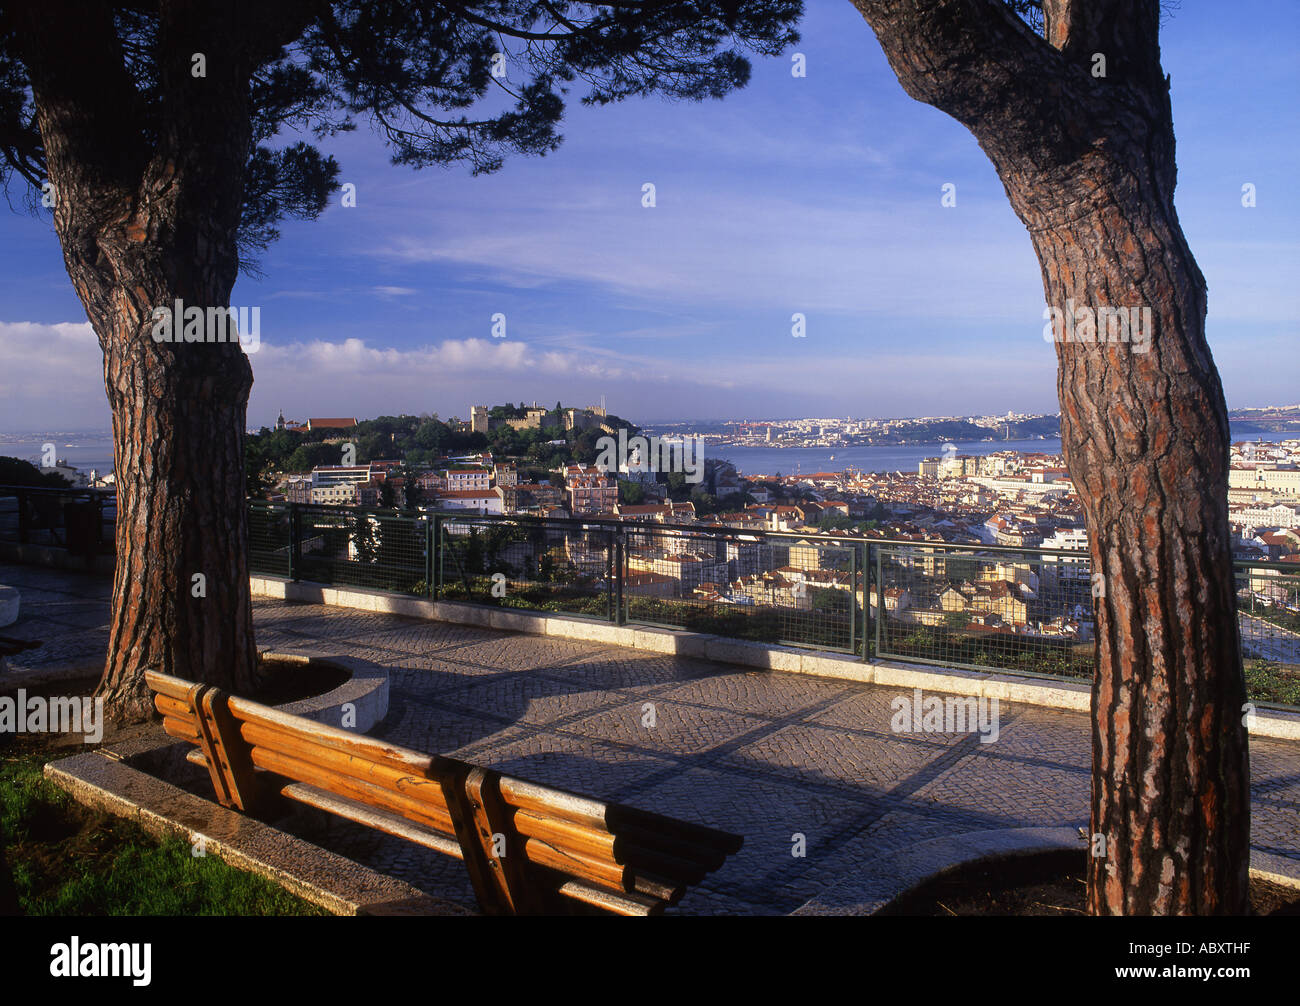 Senhora Do Monte Lisboa View High Resolution Stock Photography And Images Alamy